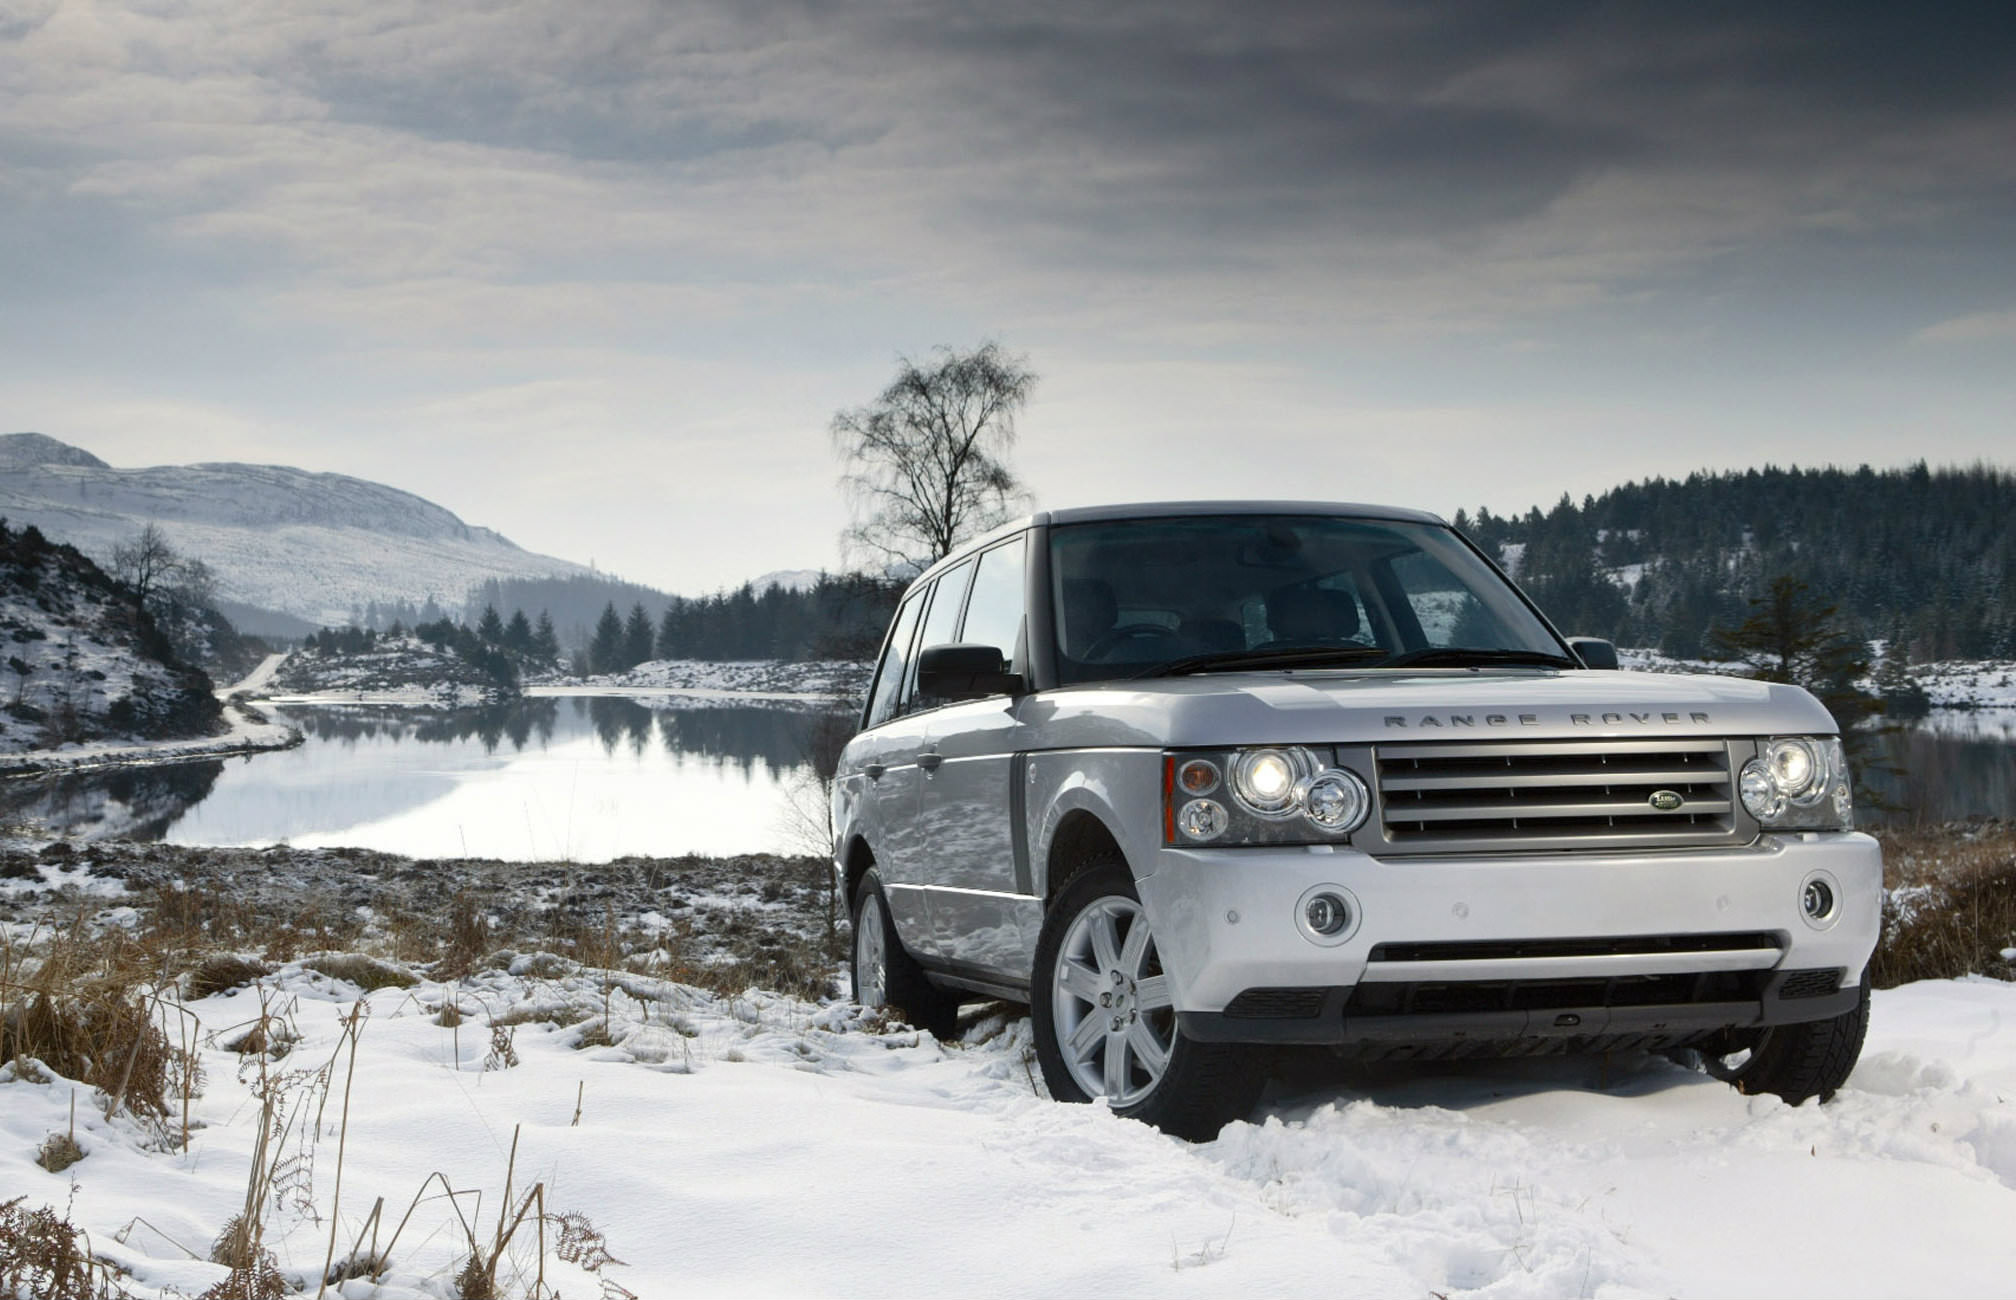 image of a silver range rover in snow conditions